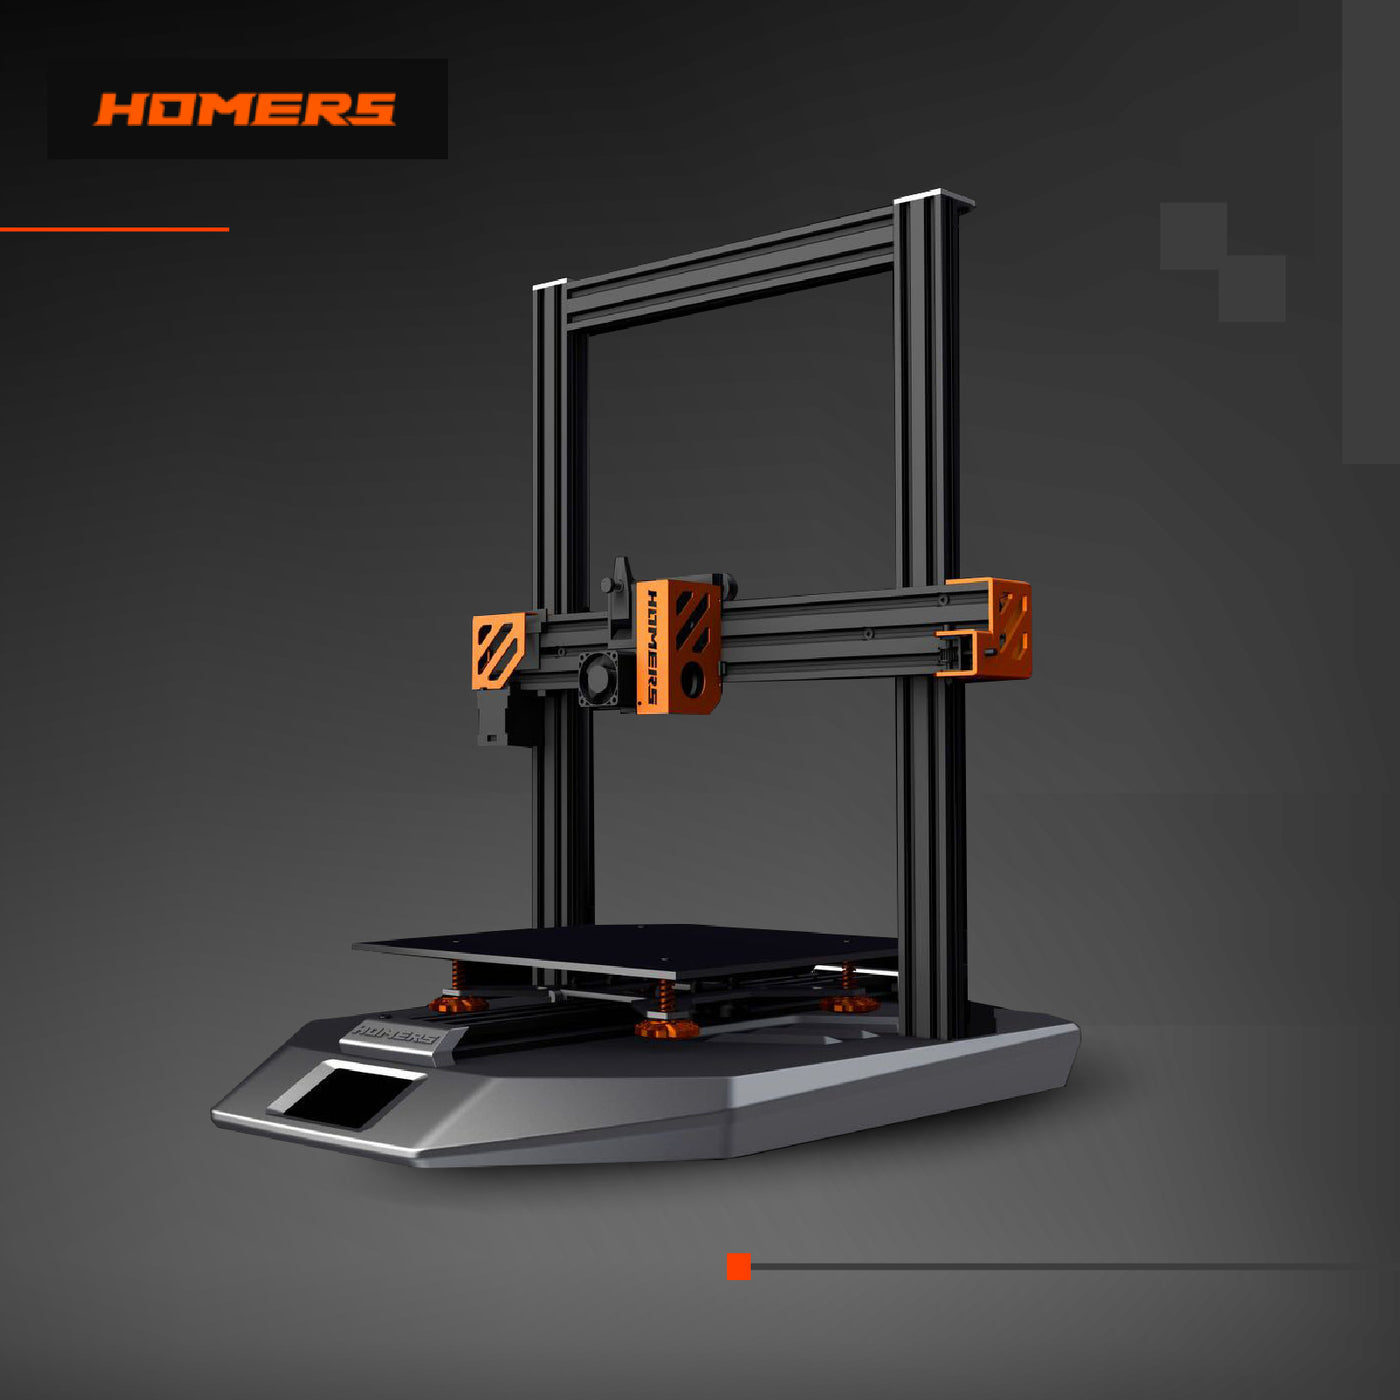 """ Homers/Tevo Hydra "" In 2021 Newest and best choice design 3D printer"